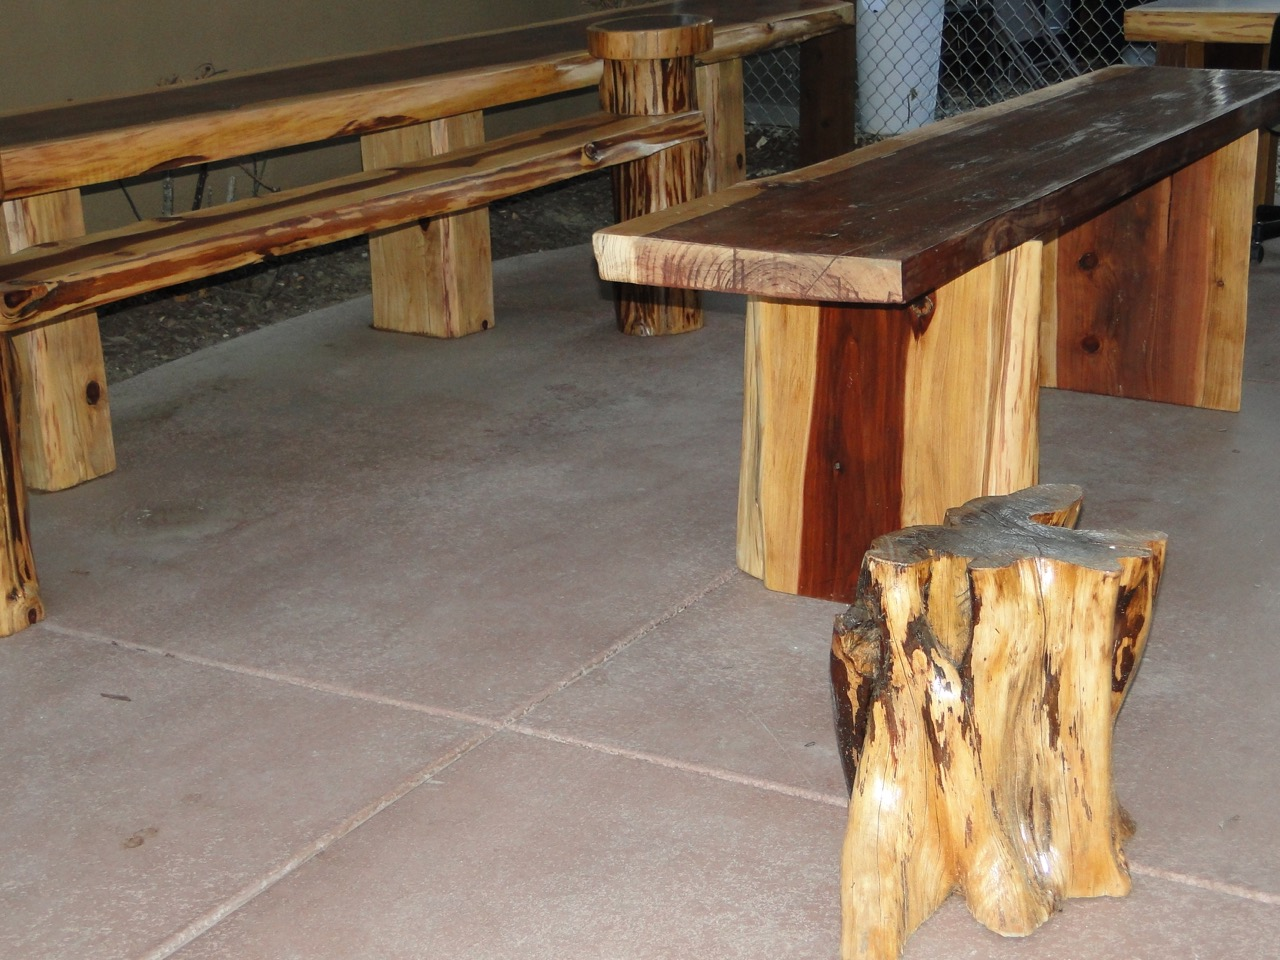 A1 Stump Reclaimed Furniture - 120